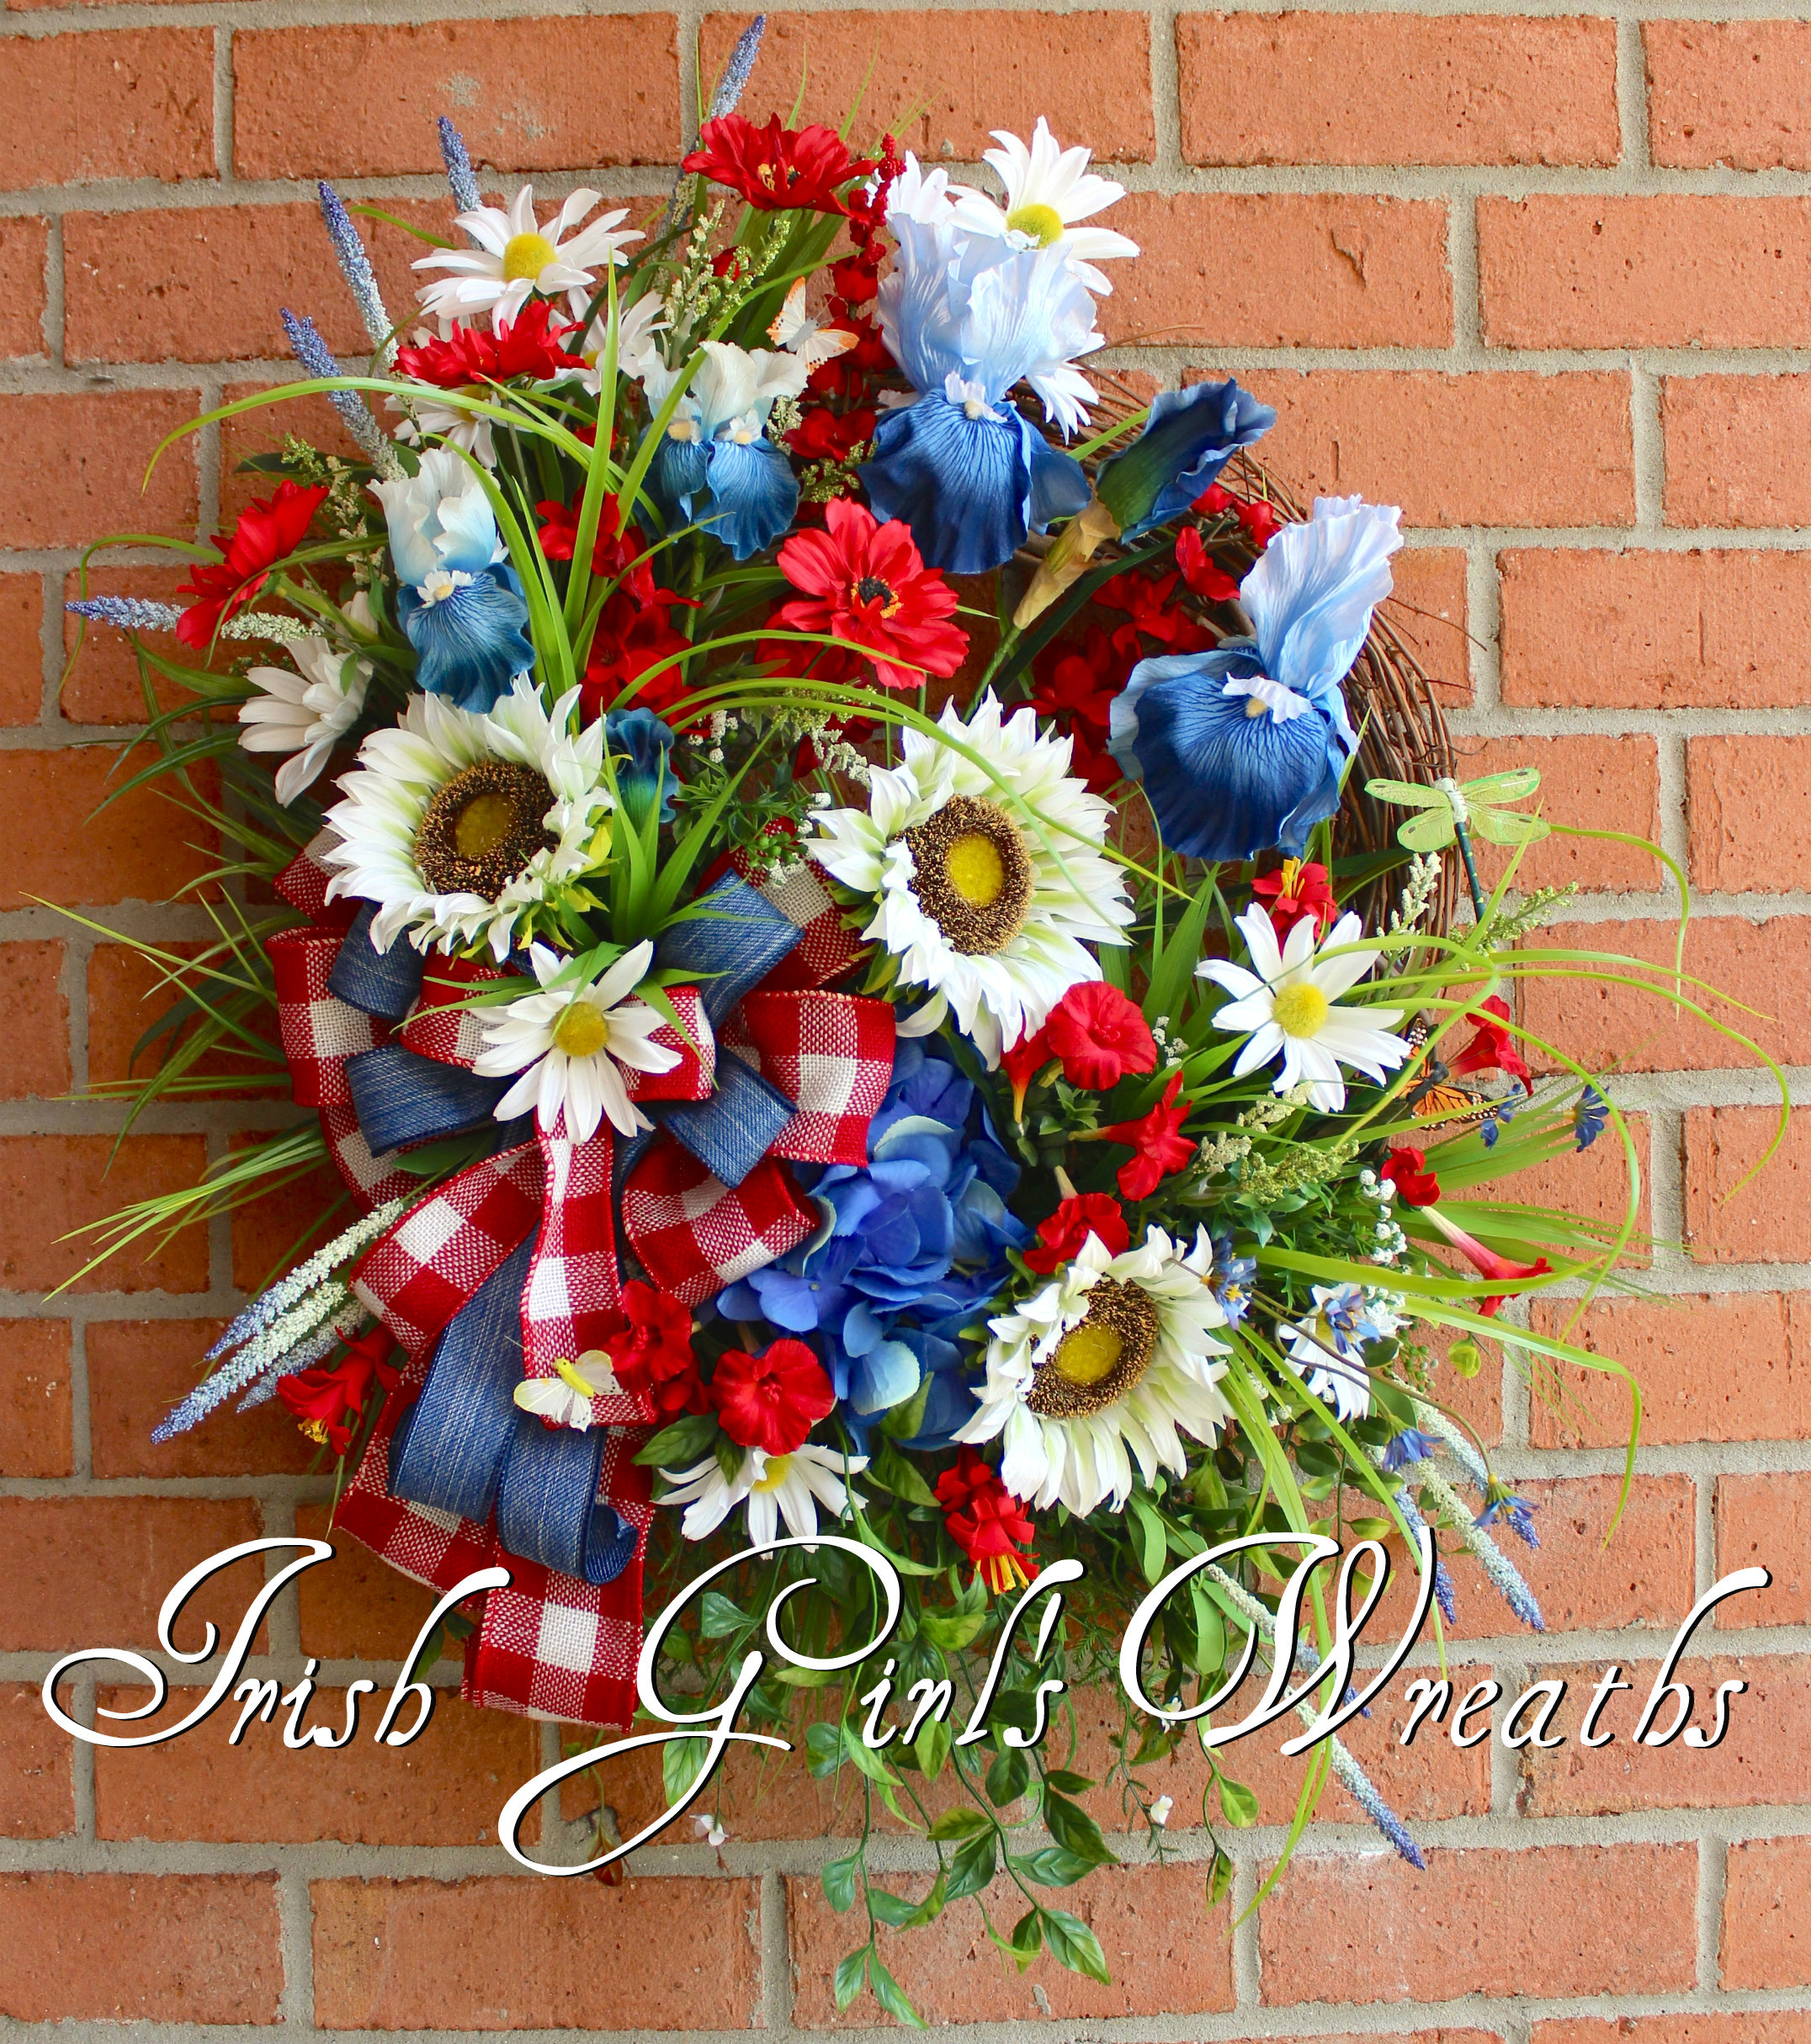 Large Patriotic American Summer Wildflower Garden Wreath, Daisy, Iris, Rustic Sunflower Red White Blue Wreath